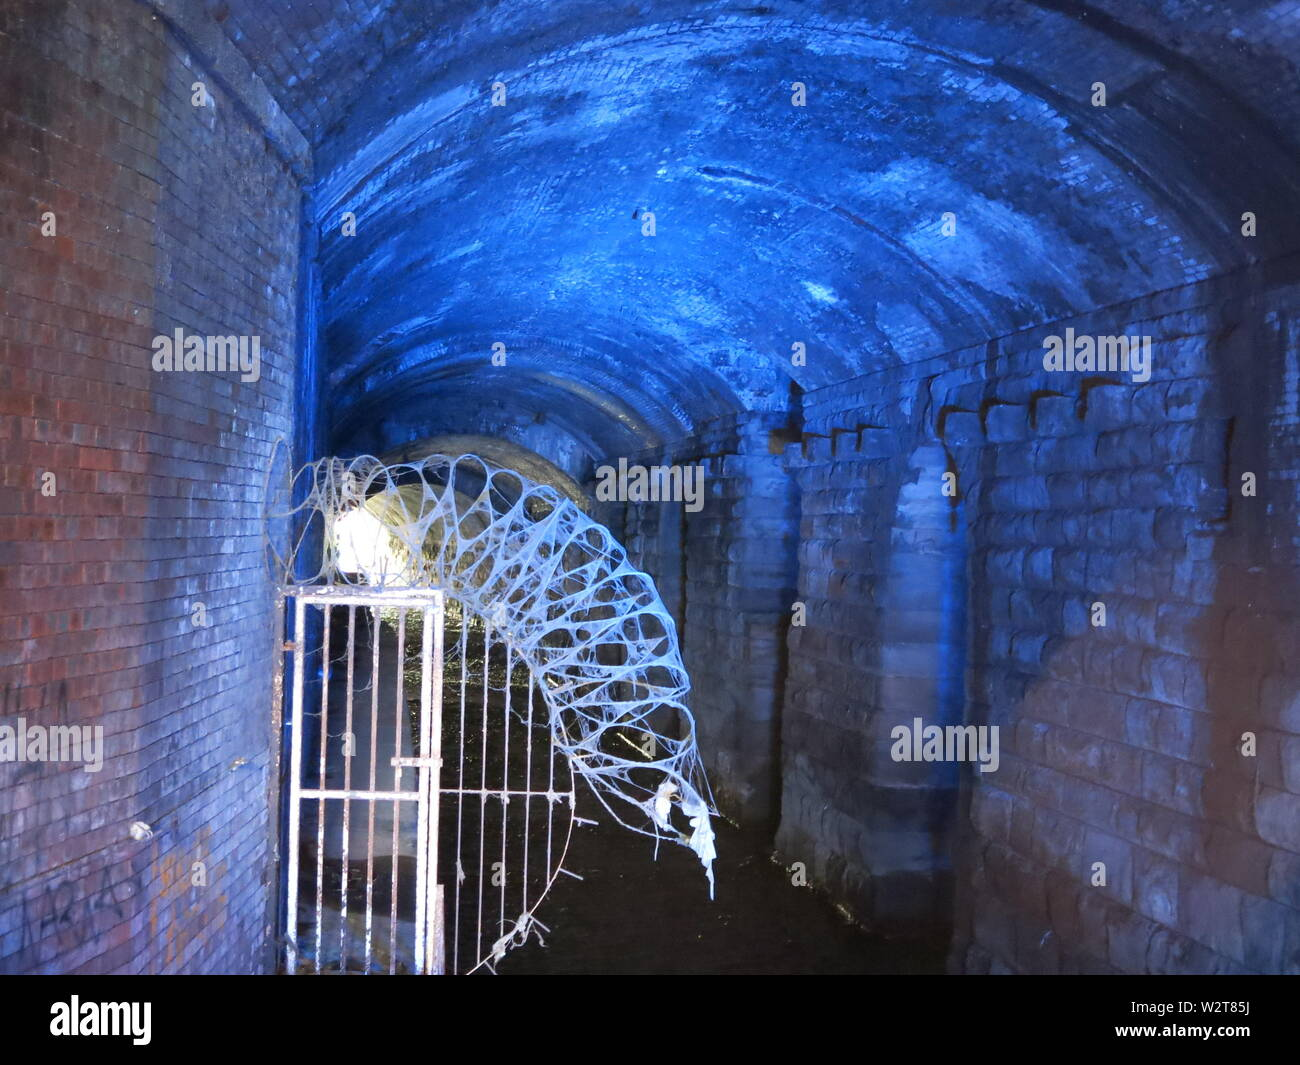 The brick-lined tunnel complex known as 'Dark Arches' sits below Leeds Railway Station, & was formerly used as wharves for the Leeds & Liverpool Canal Stock Photo